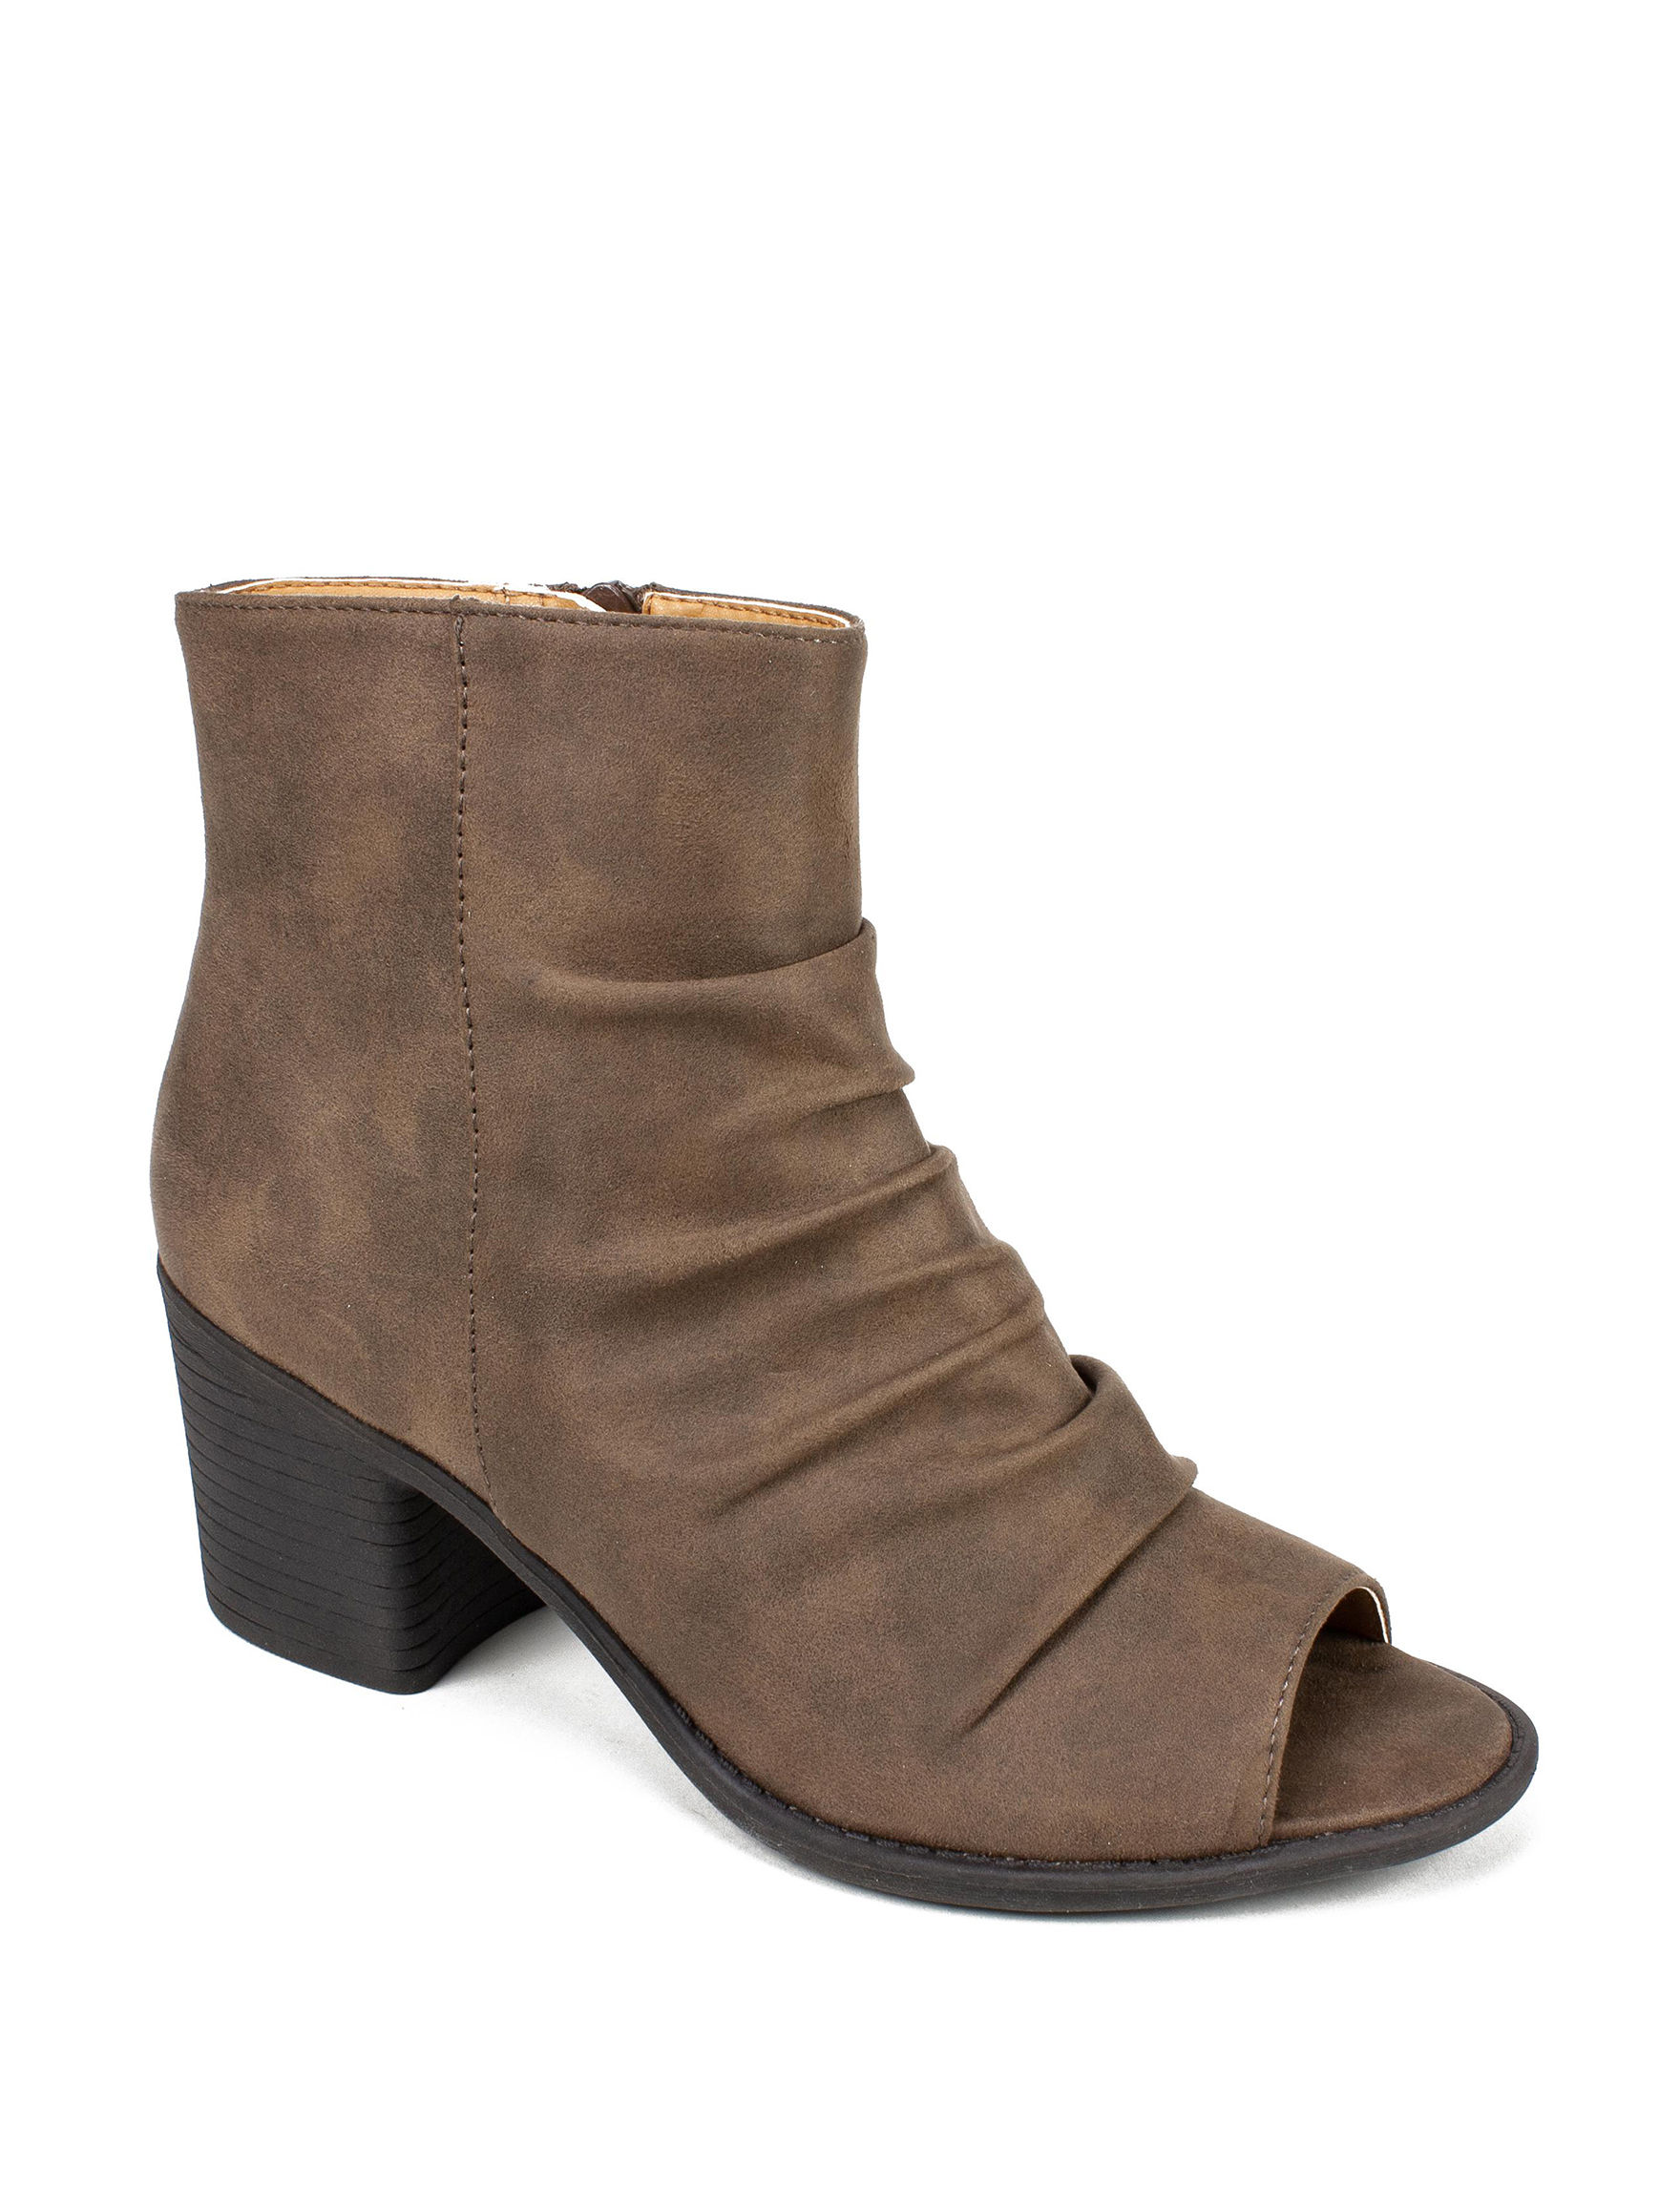 Seven Dials Brown Ankle Boots & Booties Peep Toe